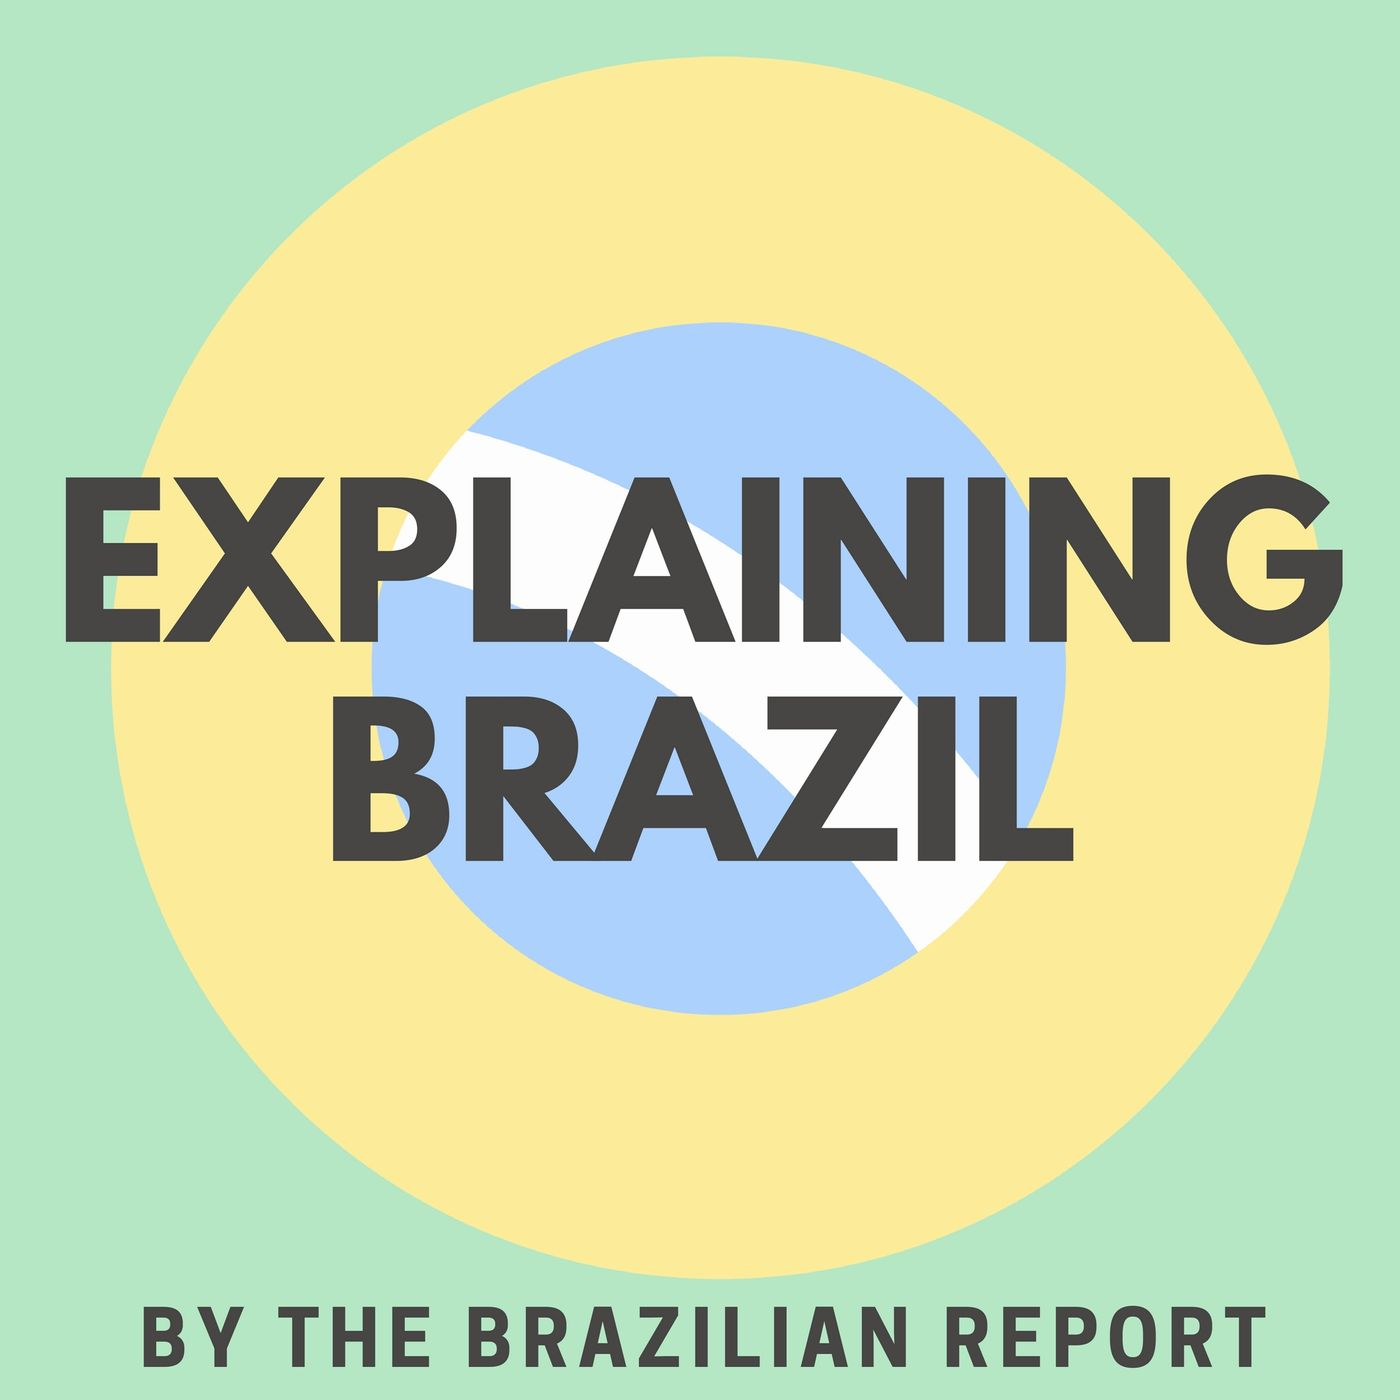 Explaining Brazil # 135 Neither to the left, the right, or in the center